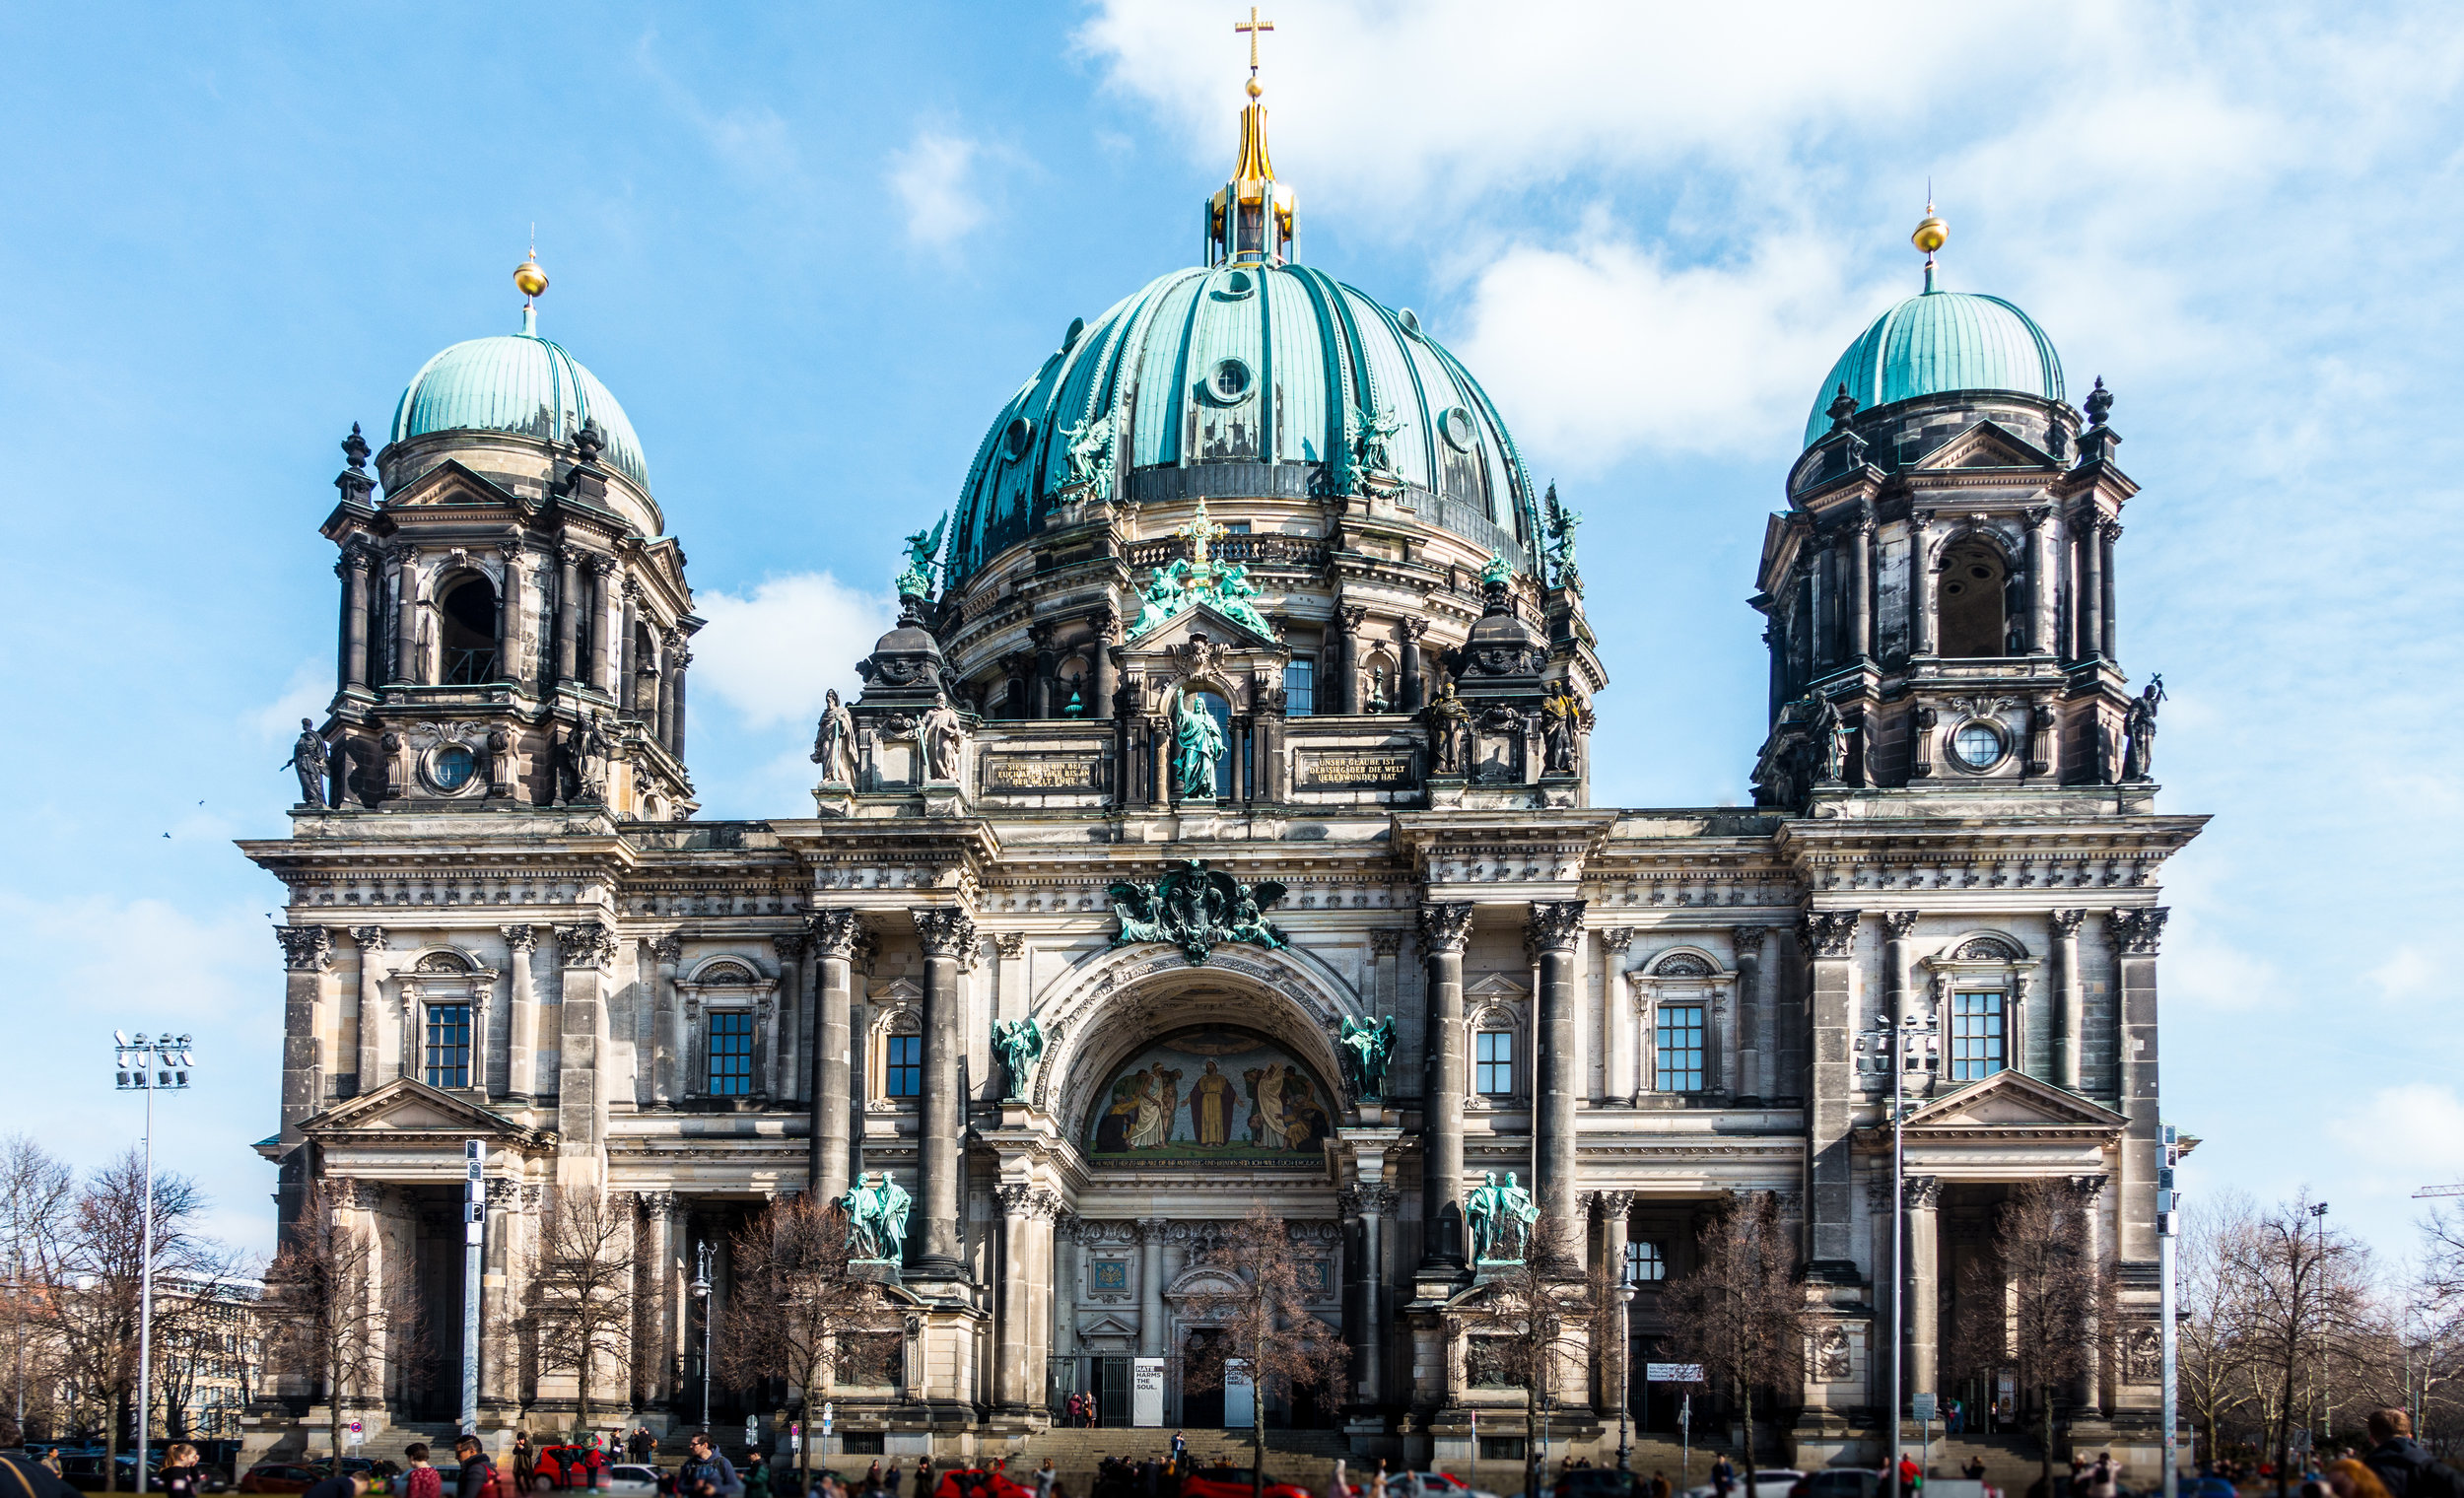 Berlin Cathedral (Berliner Dom) built in 1905 in a neoclassical style and it looks older than it is.